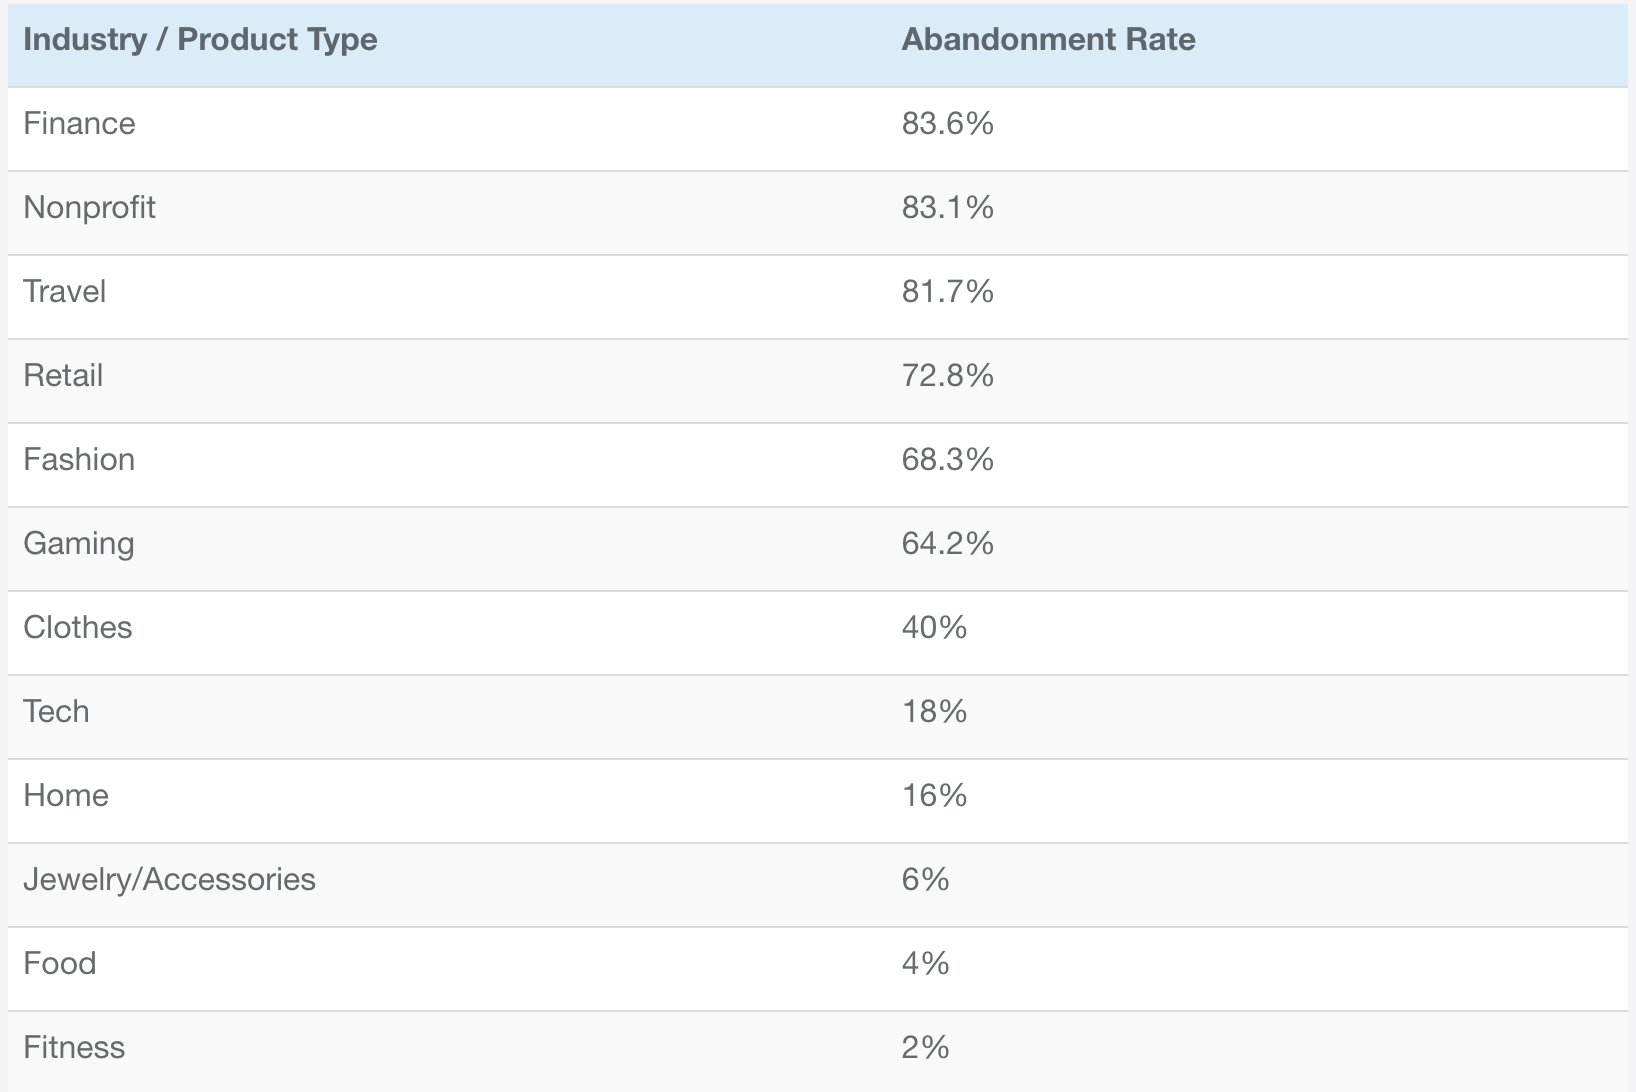 checkout abandonment rate by industry